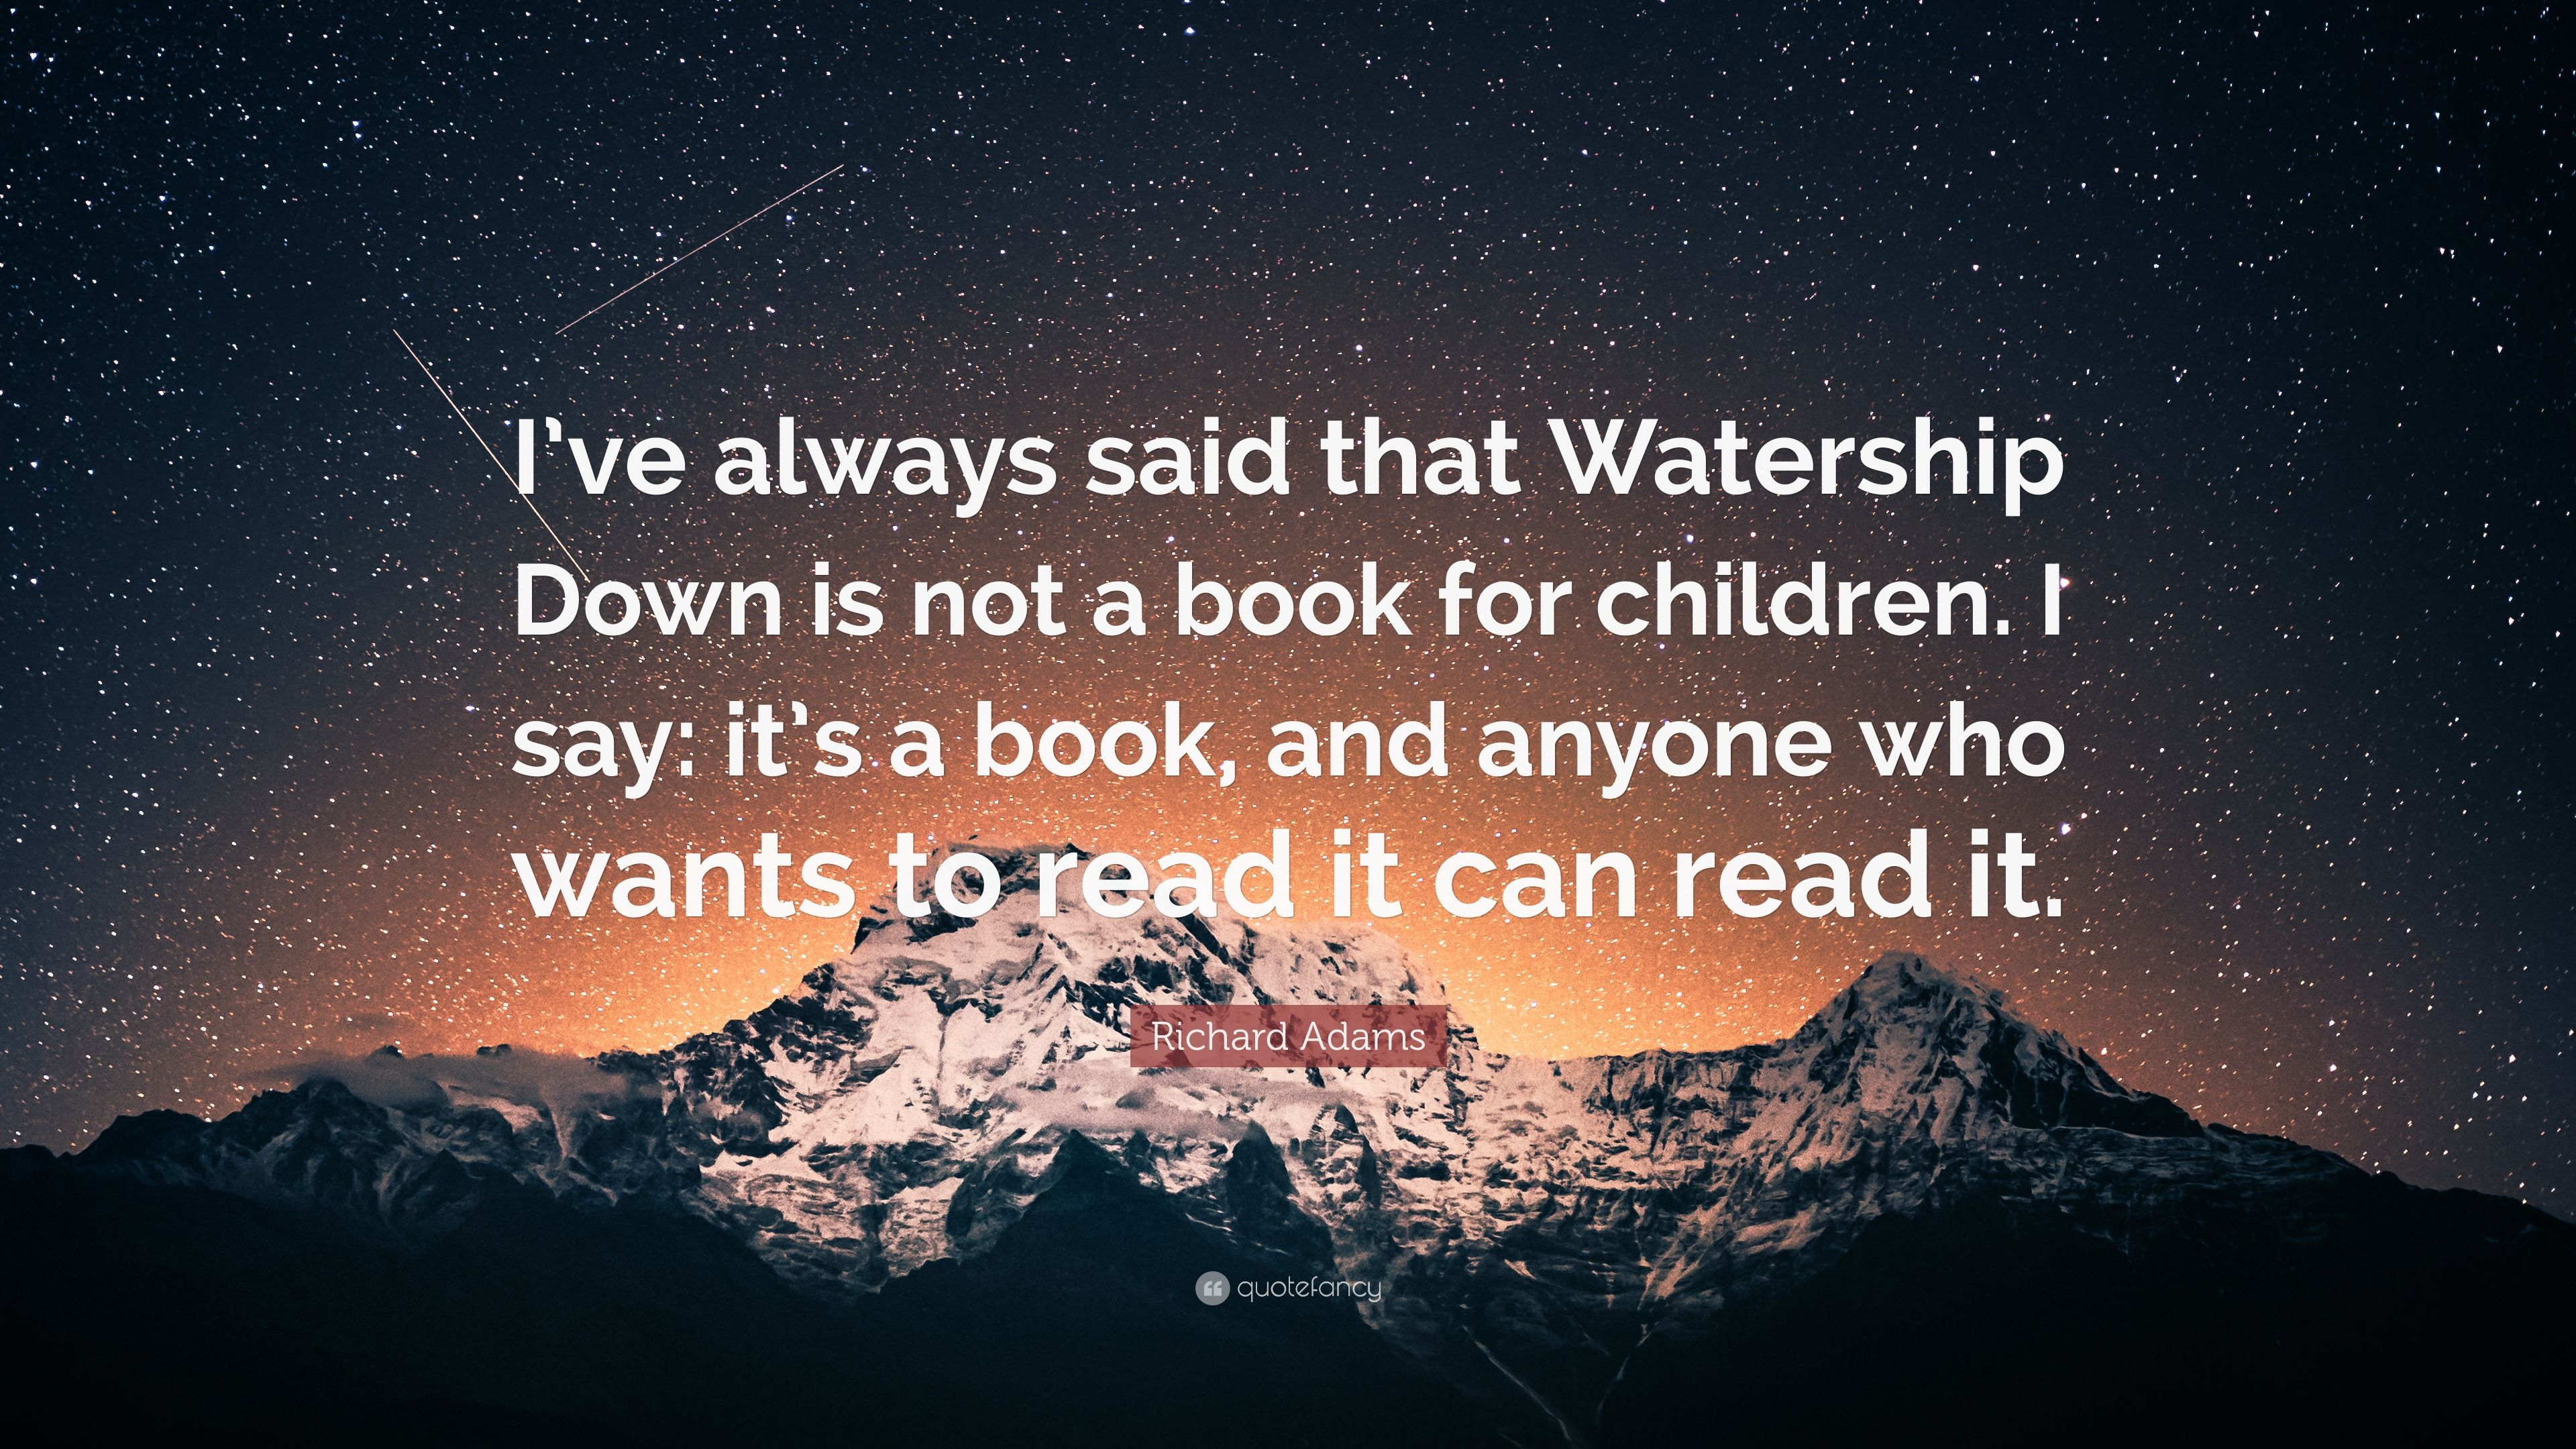 Richard Adams Quote Ive Always Said That Watership Down Is Not A